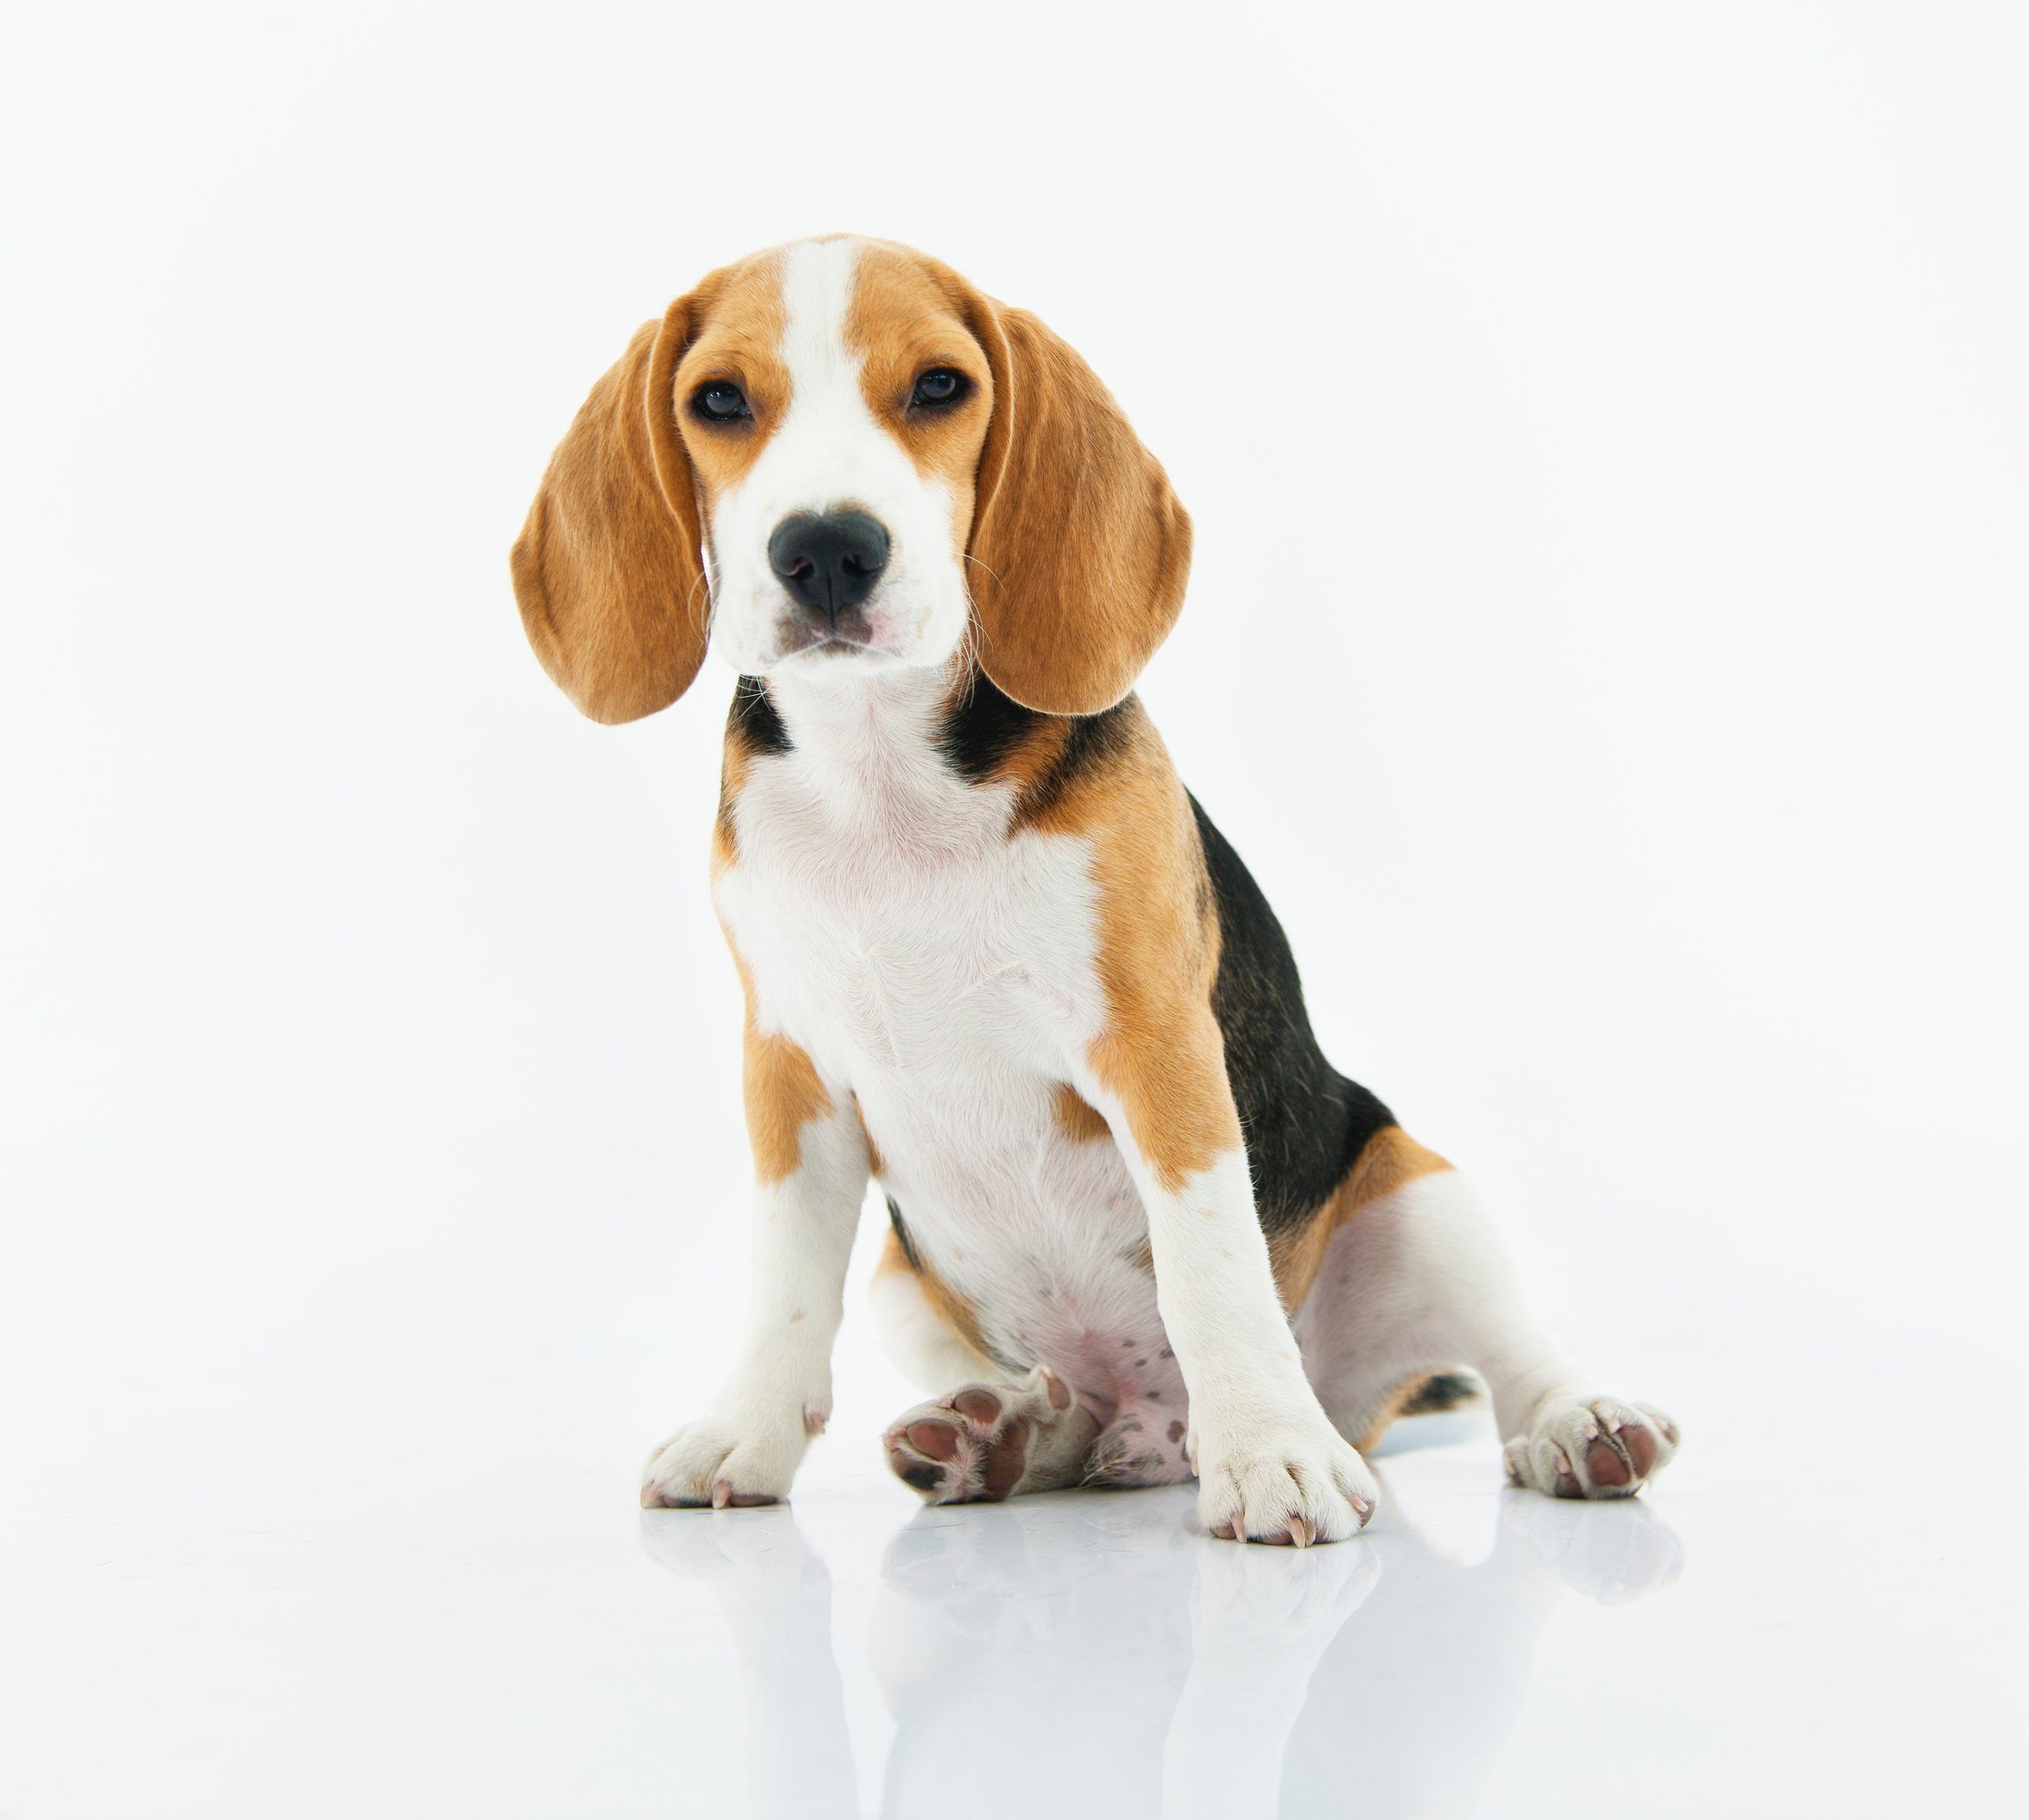 adorable-animal-beagle-1345191.jpg